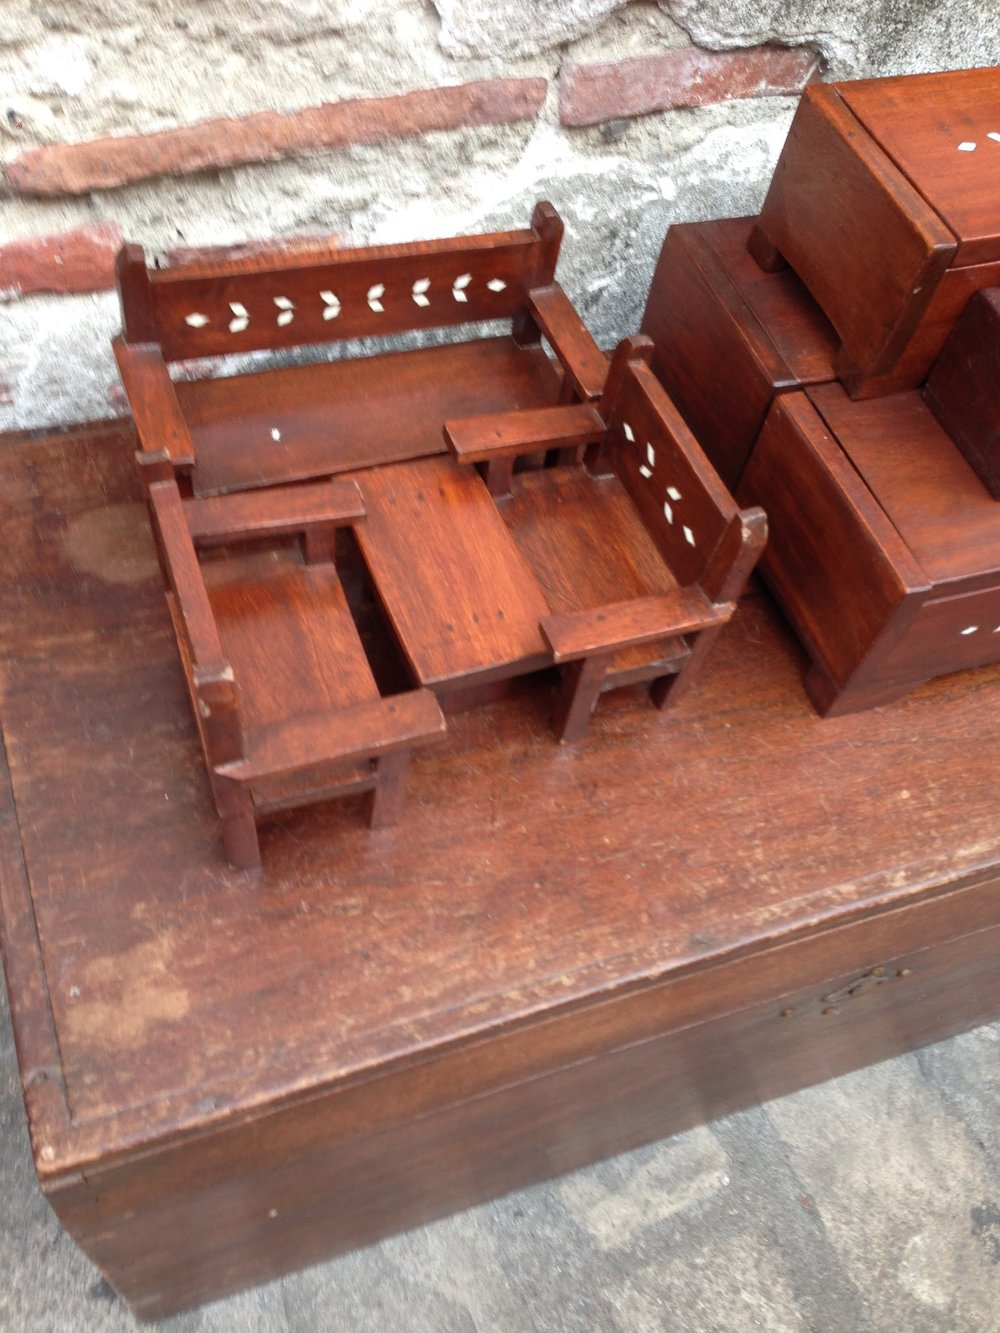 Vigan mini-furniture